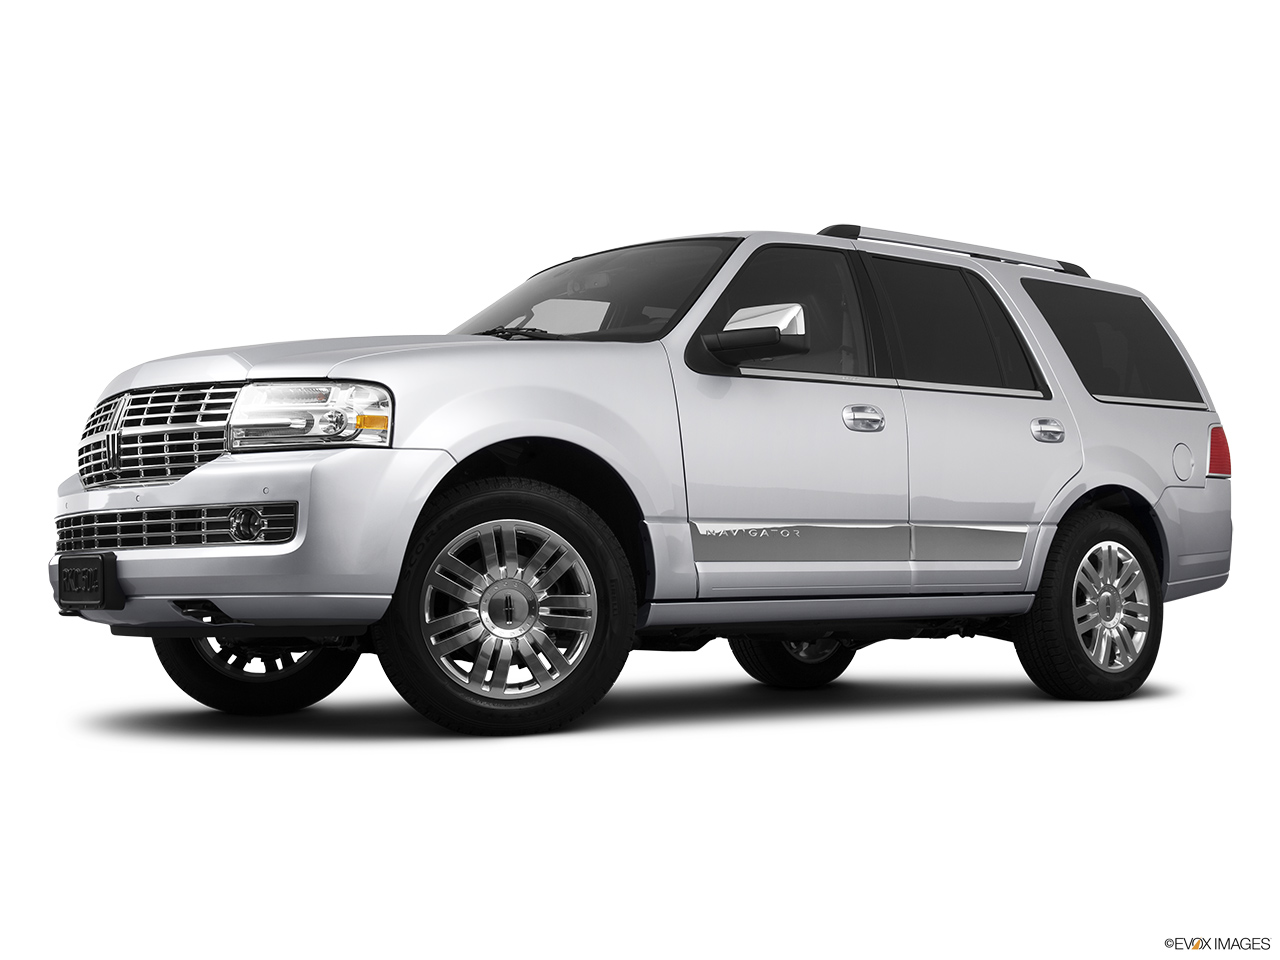 2013 Lincoln Navigator Base Low/wide front 5/8.